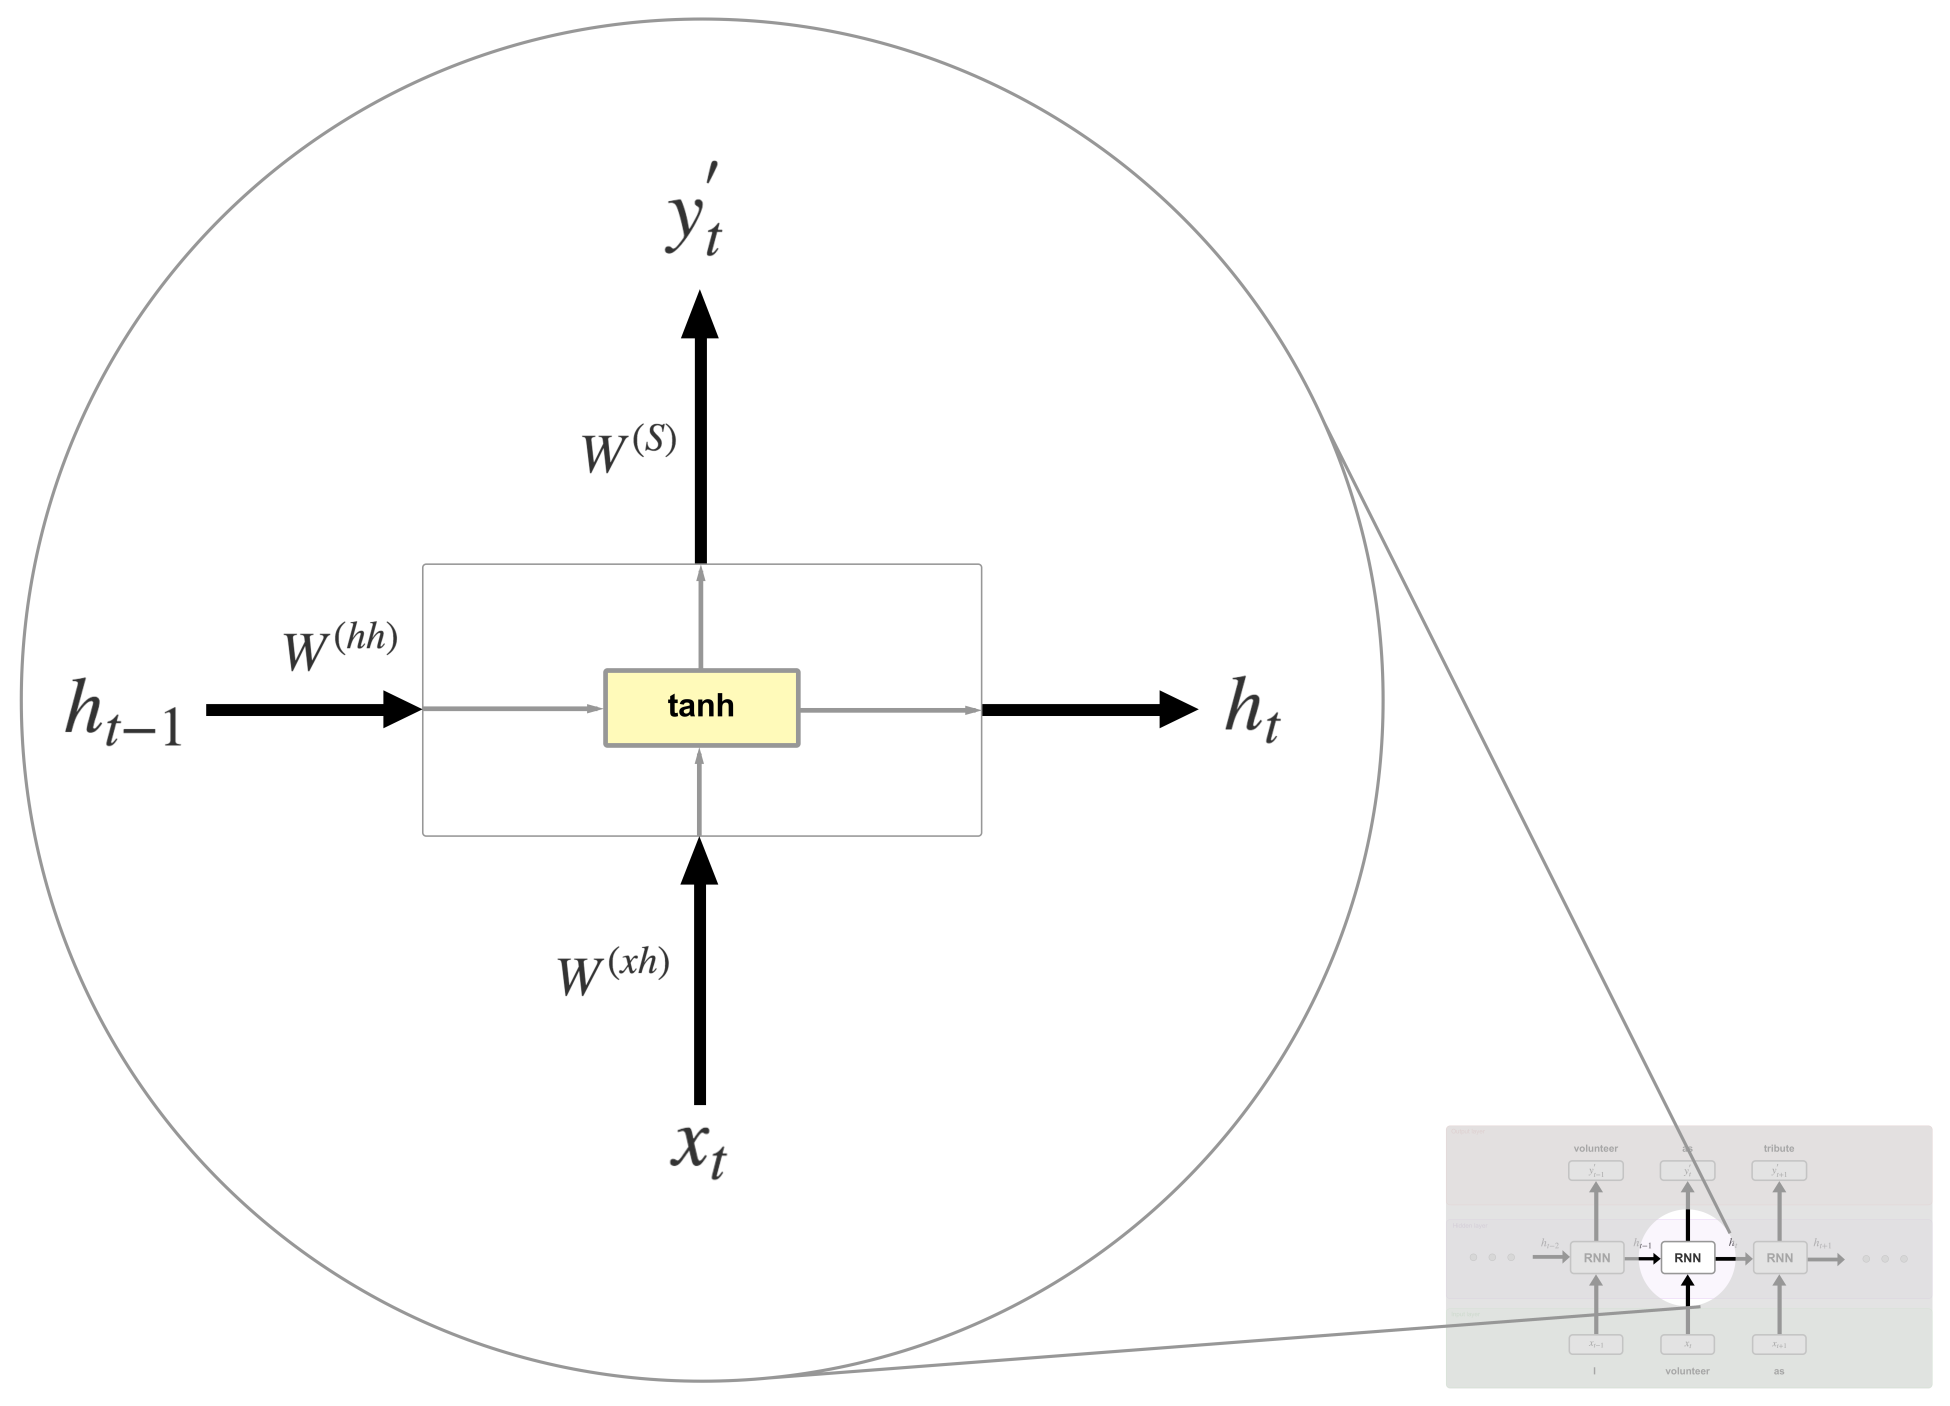 Training the model - Recurrent Neural Networks with Python Quick